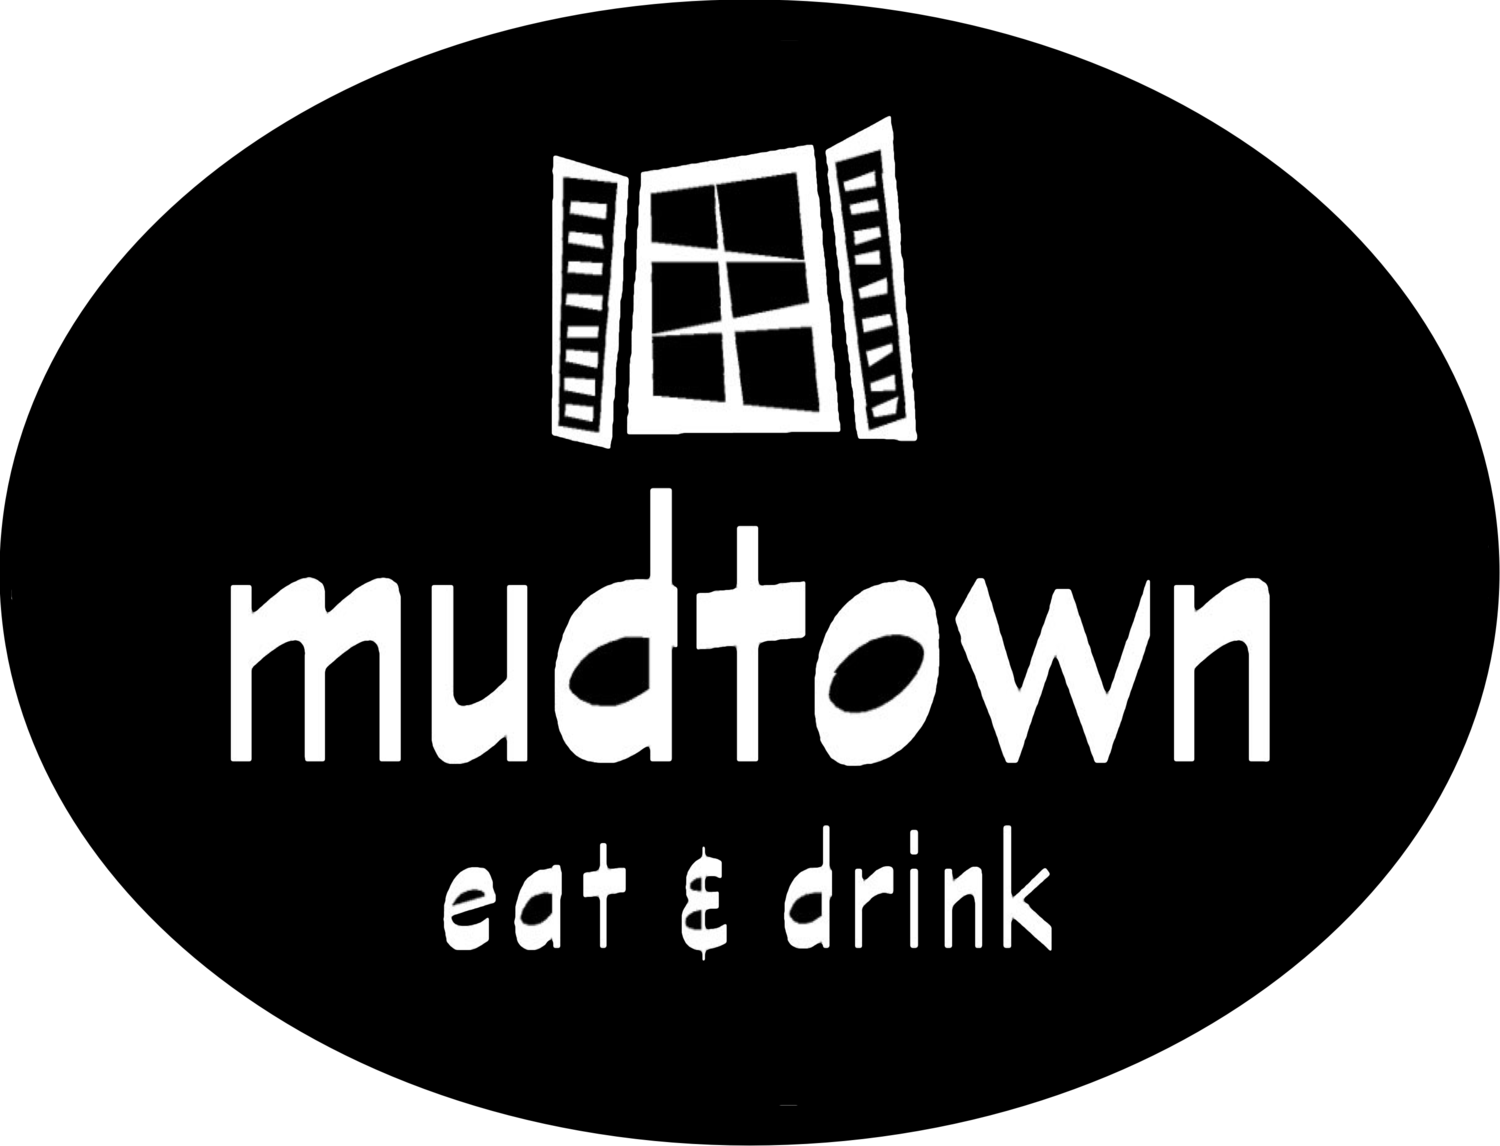 Mudtown Eat & Drink